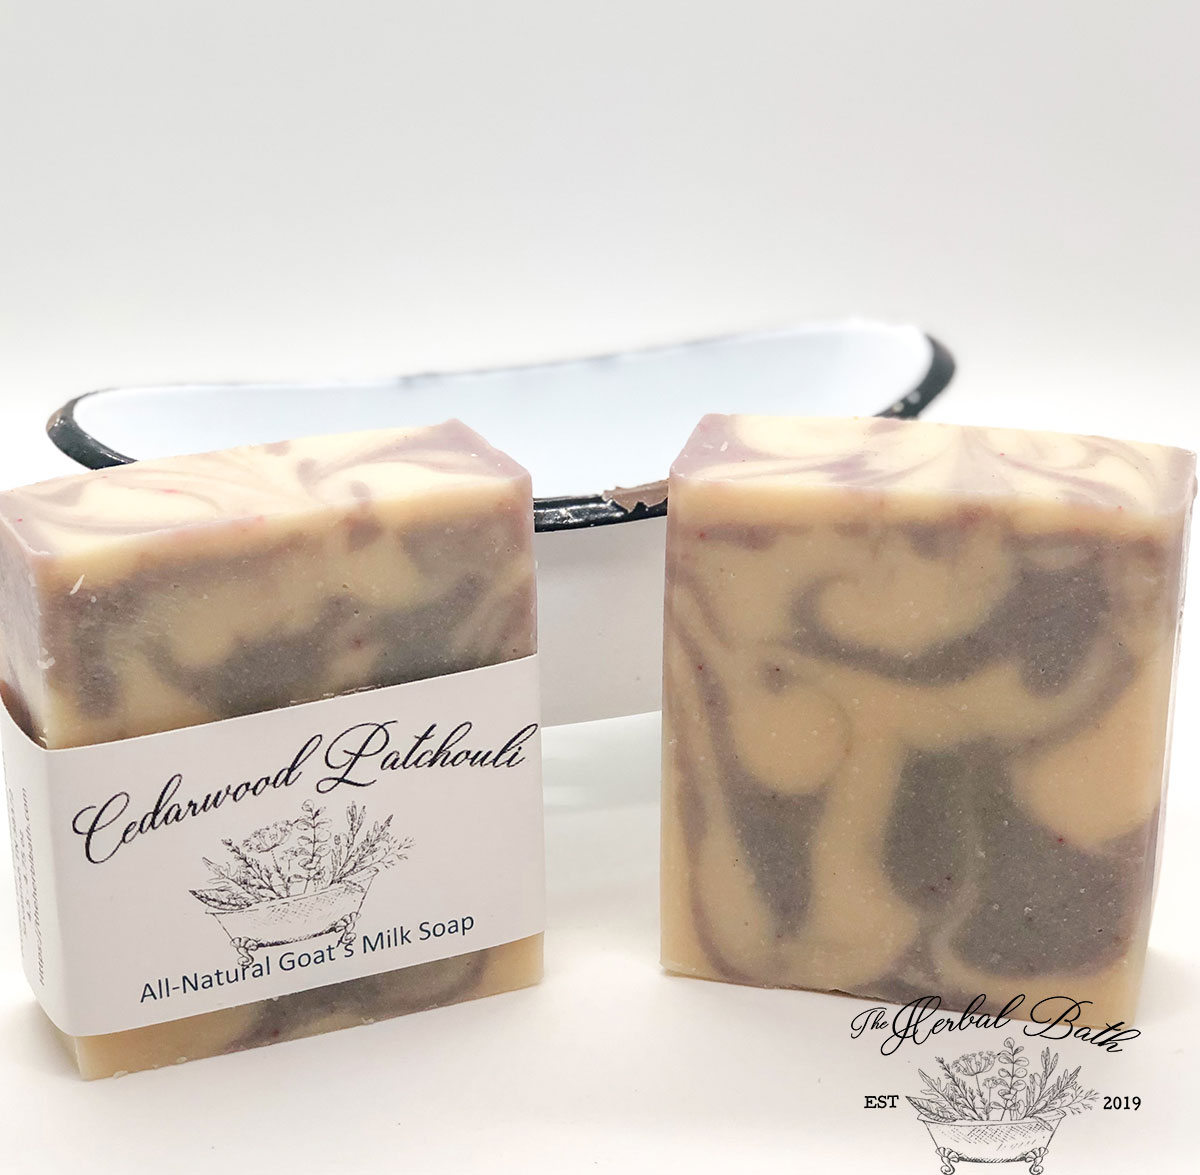 Cedarwood Patchouli Soap